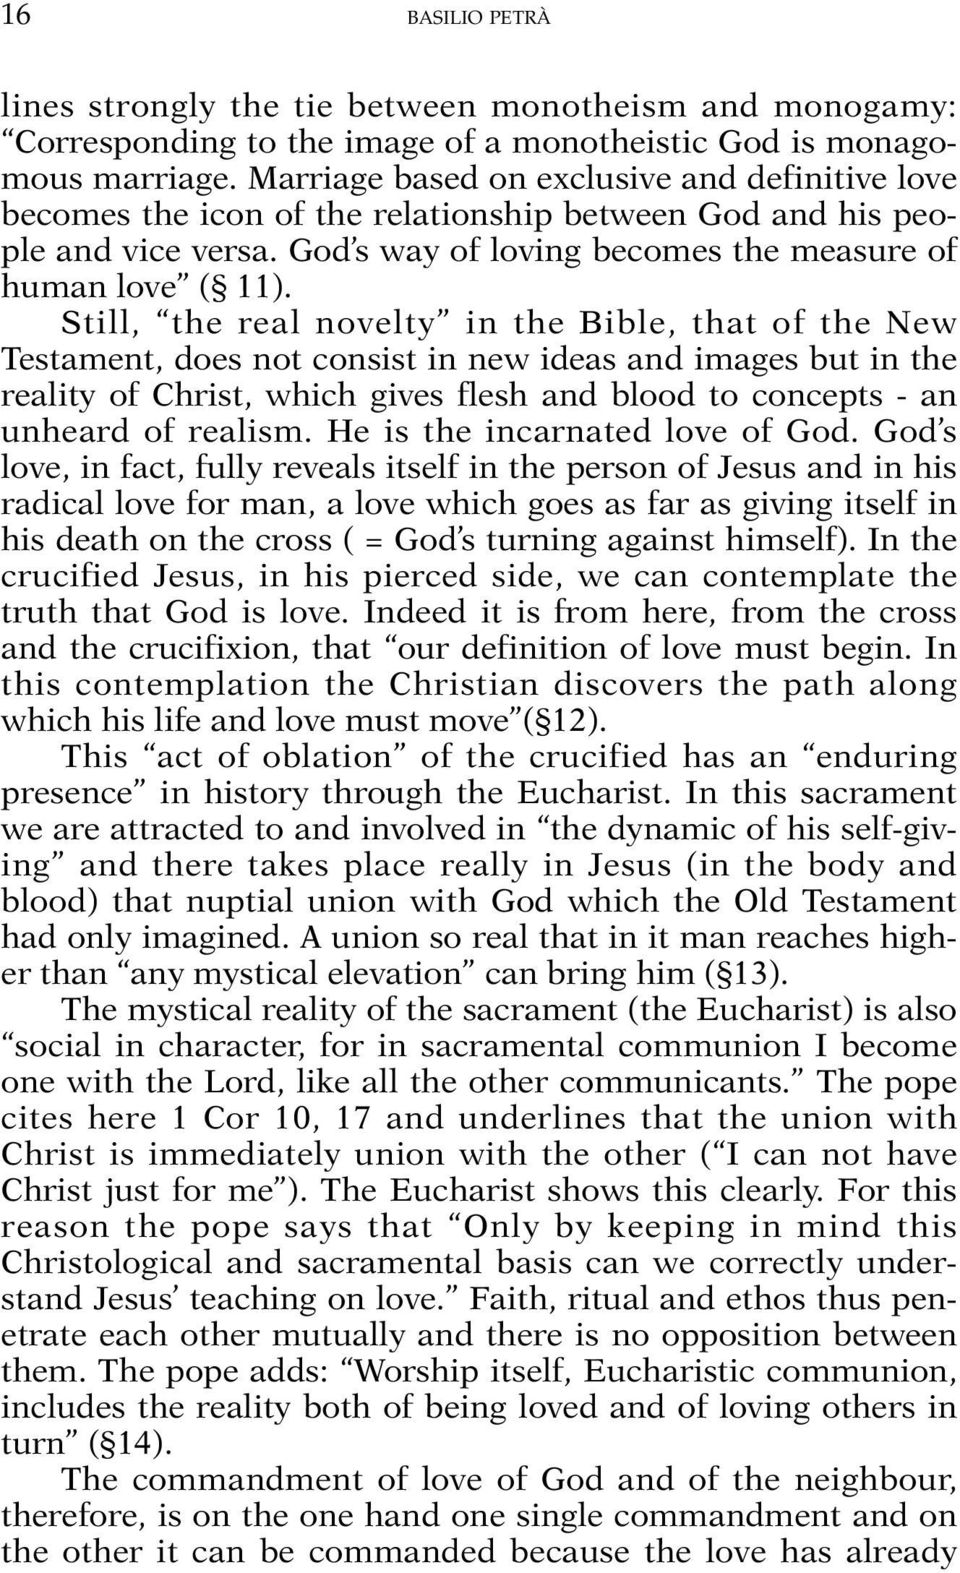 Still, the real novelty in the Bible, that of the New Testament, does not consist in new ideas and images but in the reality of Christ, which gives flesh and blood to concepts - an unheard of realism.